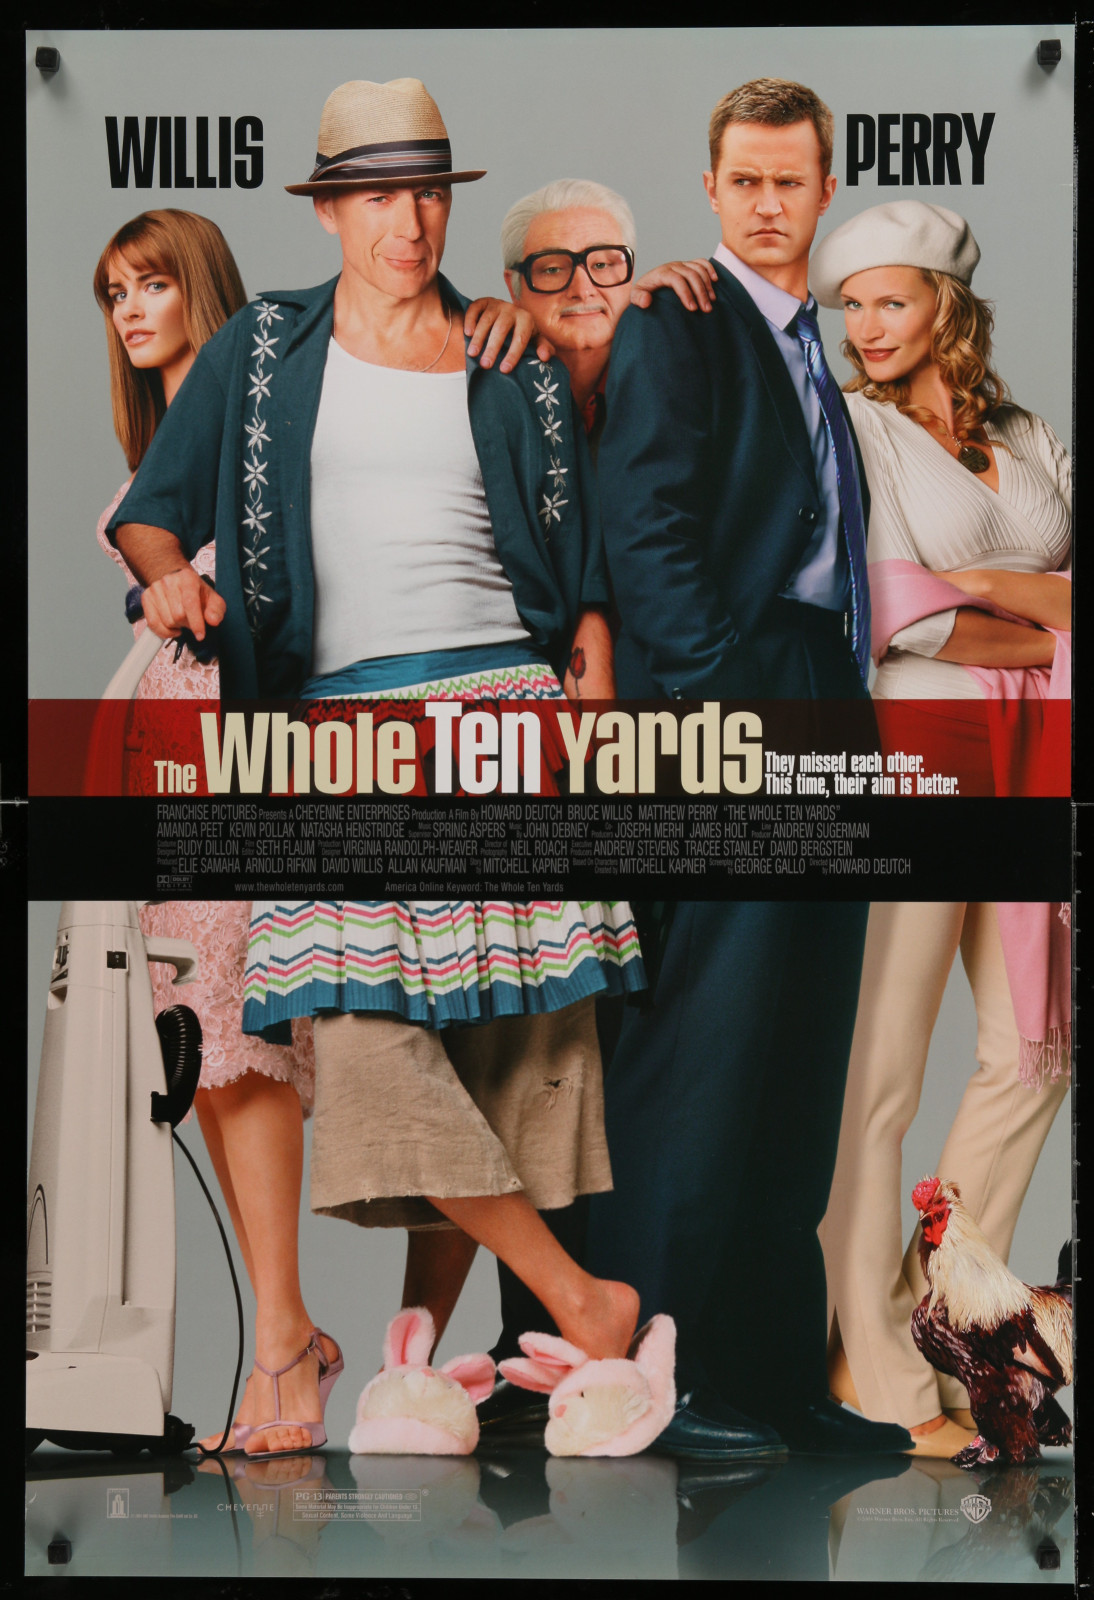 The Whole Ten Yards 2A391 A Part Of A Lot 24 Unfolded Double-Sided 27X40 One-Sheets '90S-00S Great Movie Images!